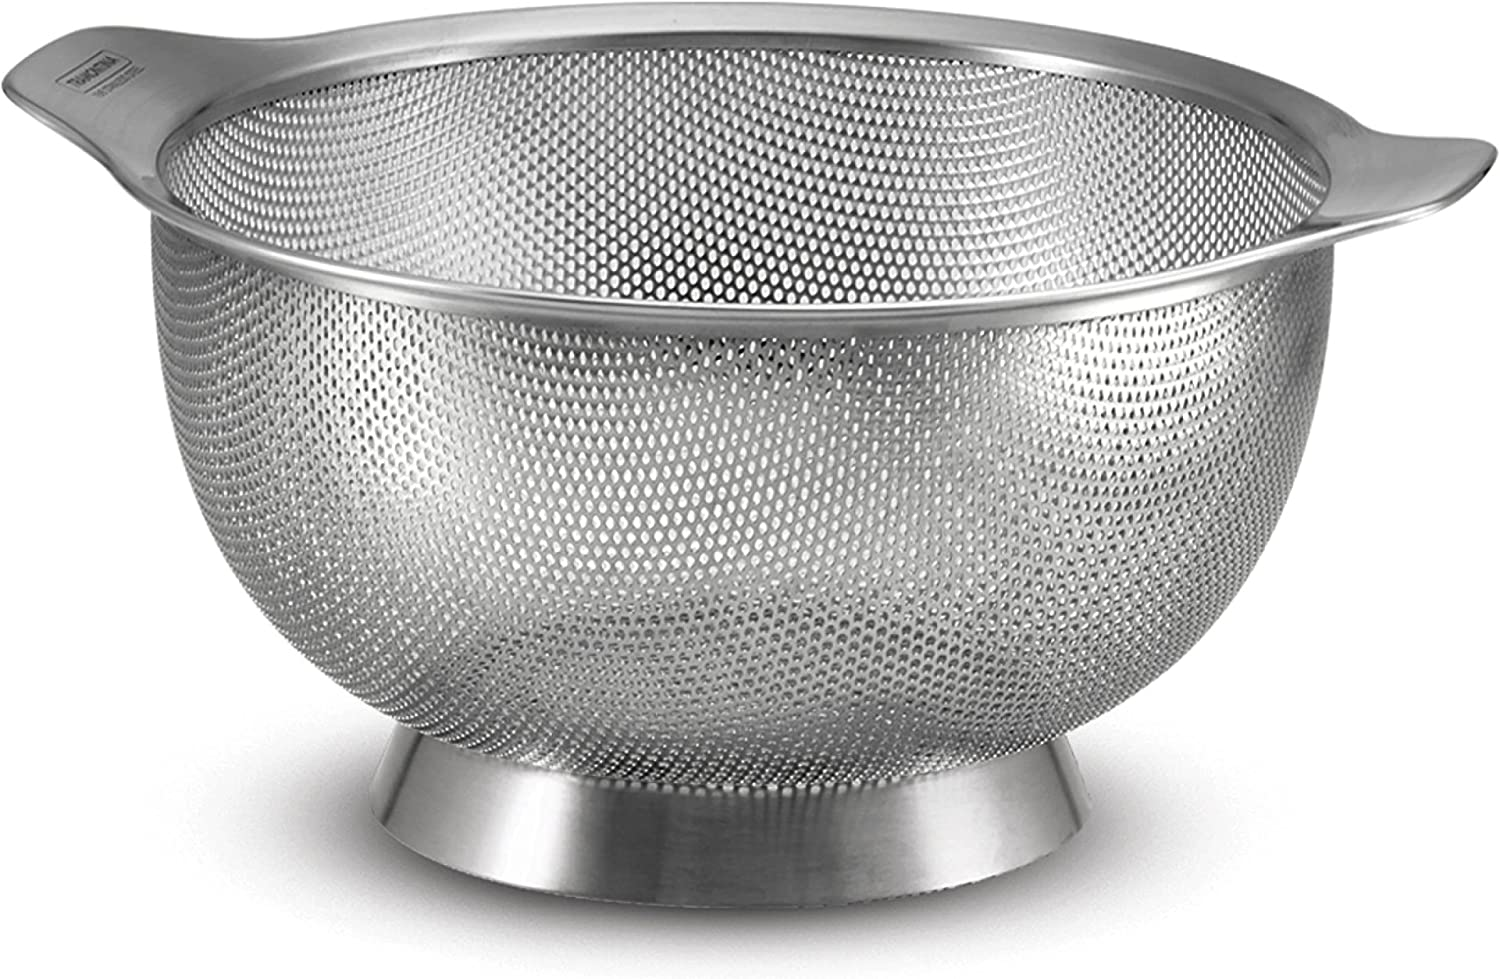 Tramontina 80201/005DS Gourmet Stainless Steel Colander, Micro-Perforated, Dishwasher Safe, 4.5-Quart